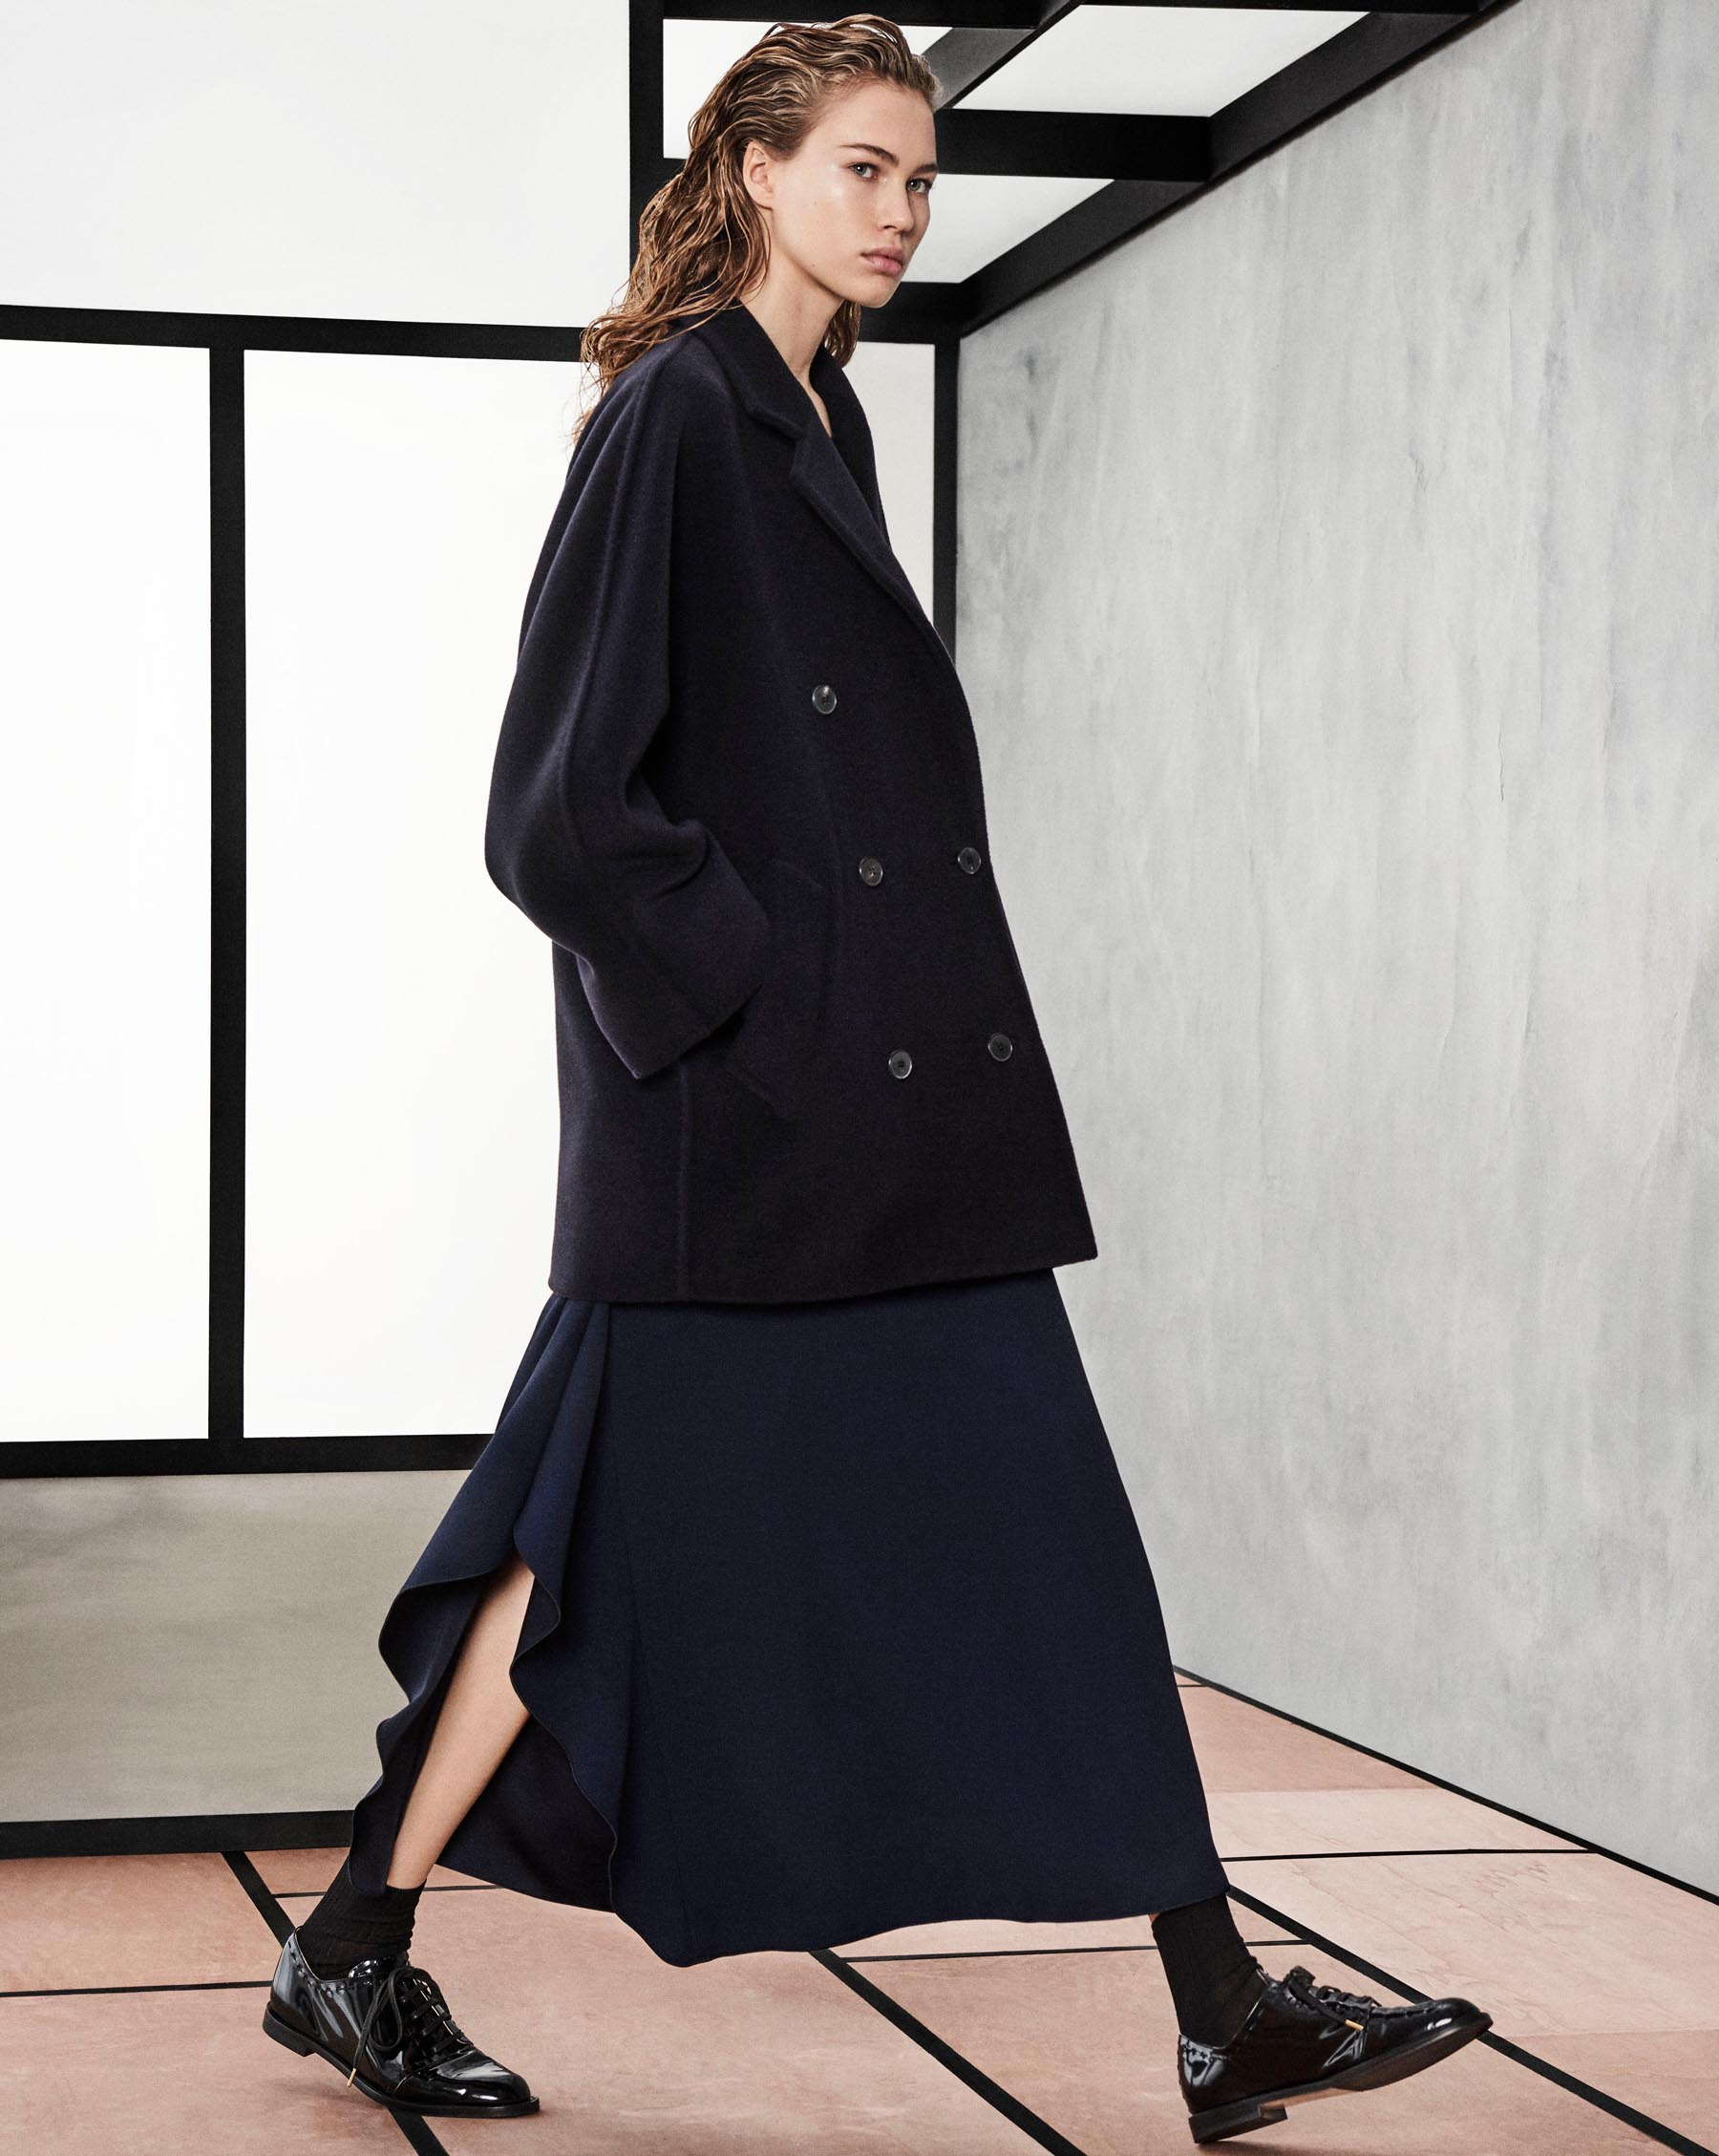 foto Max Mara Pre-Fall 2019 Runway Show In Shanghai's Exhibition Center